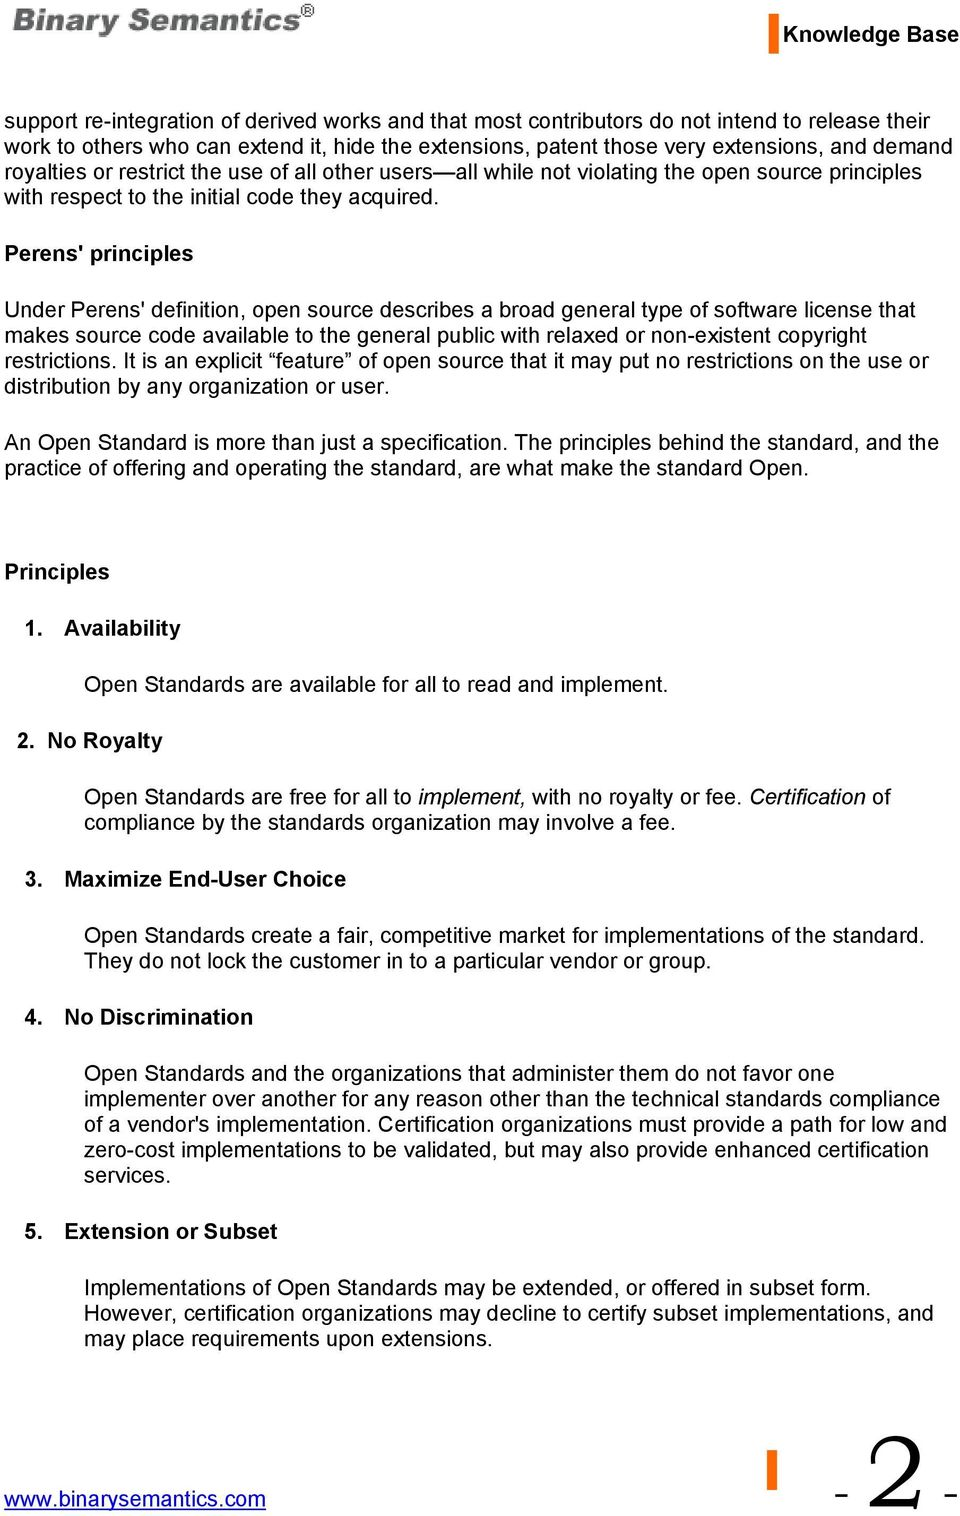 Perens' principles Under Perens' definition, open source describes a broad general type of software license that makes source code available to the general public with relaxed or non-existent